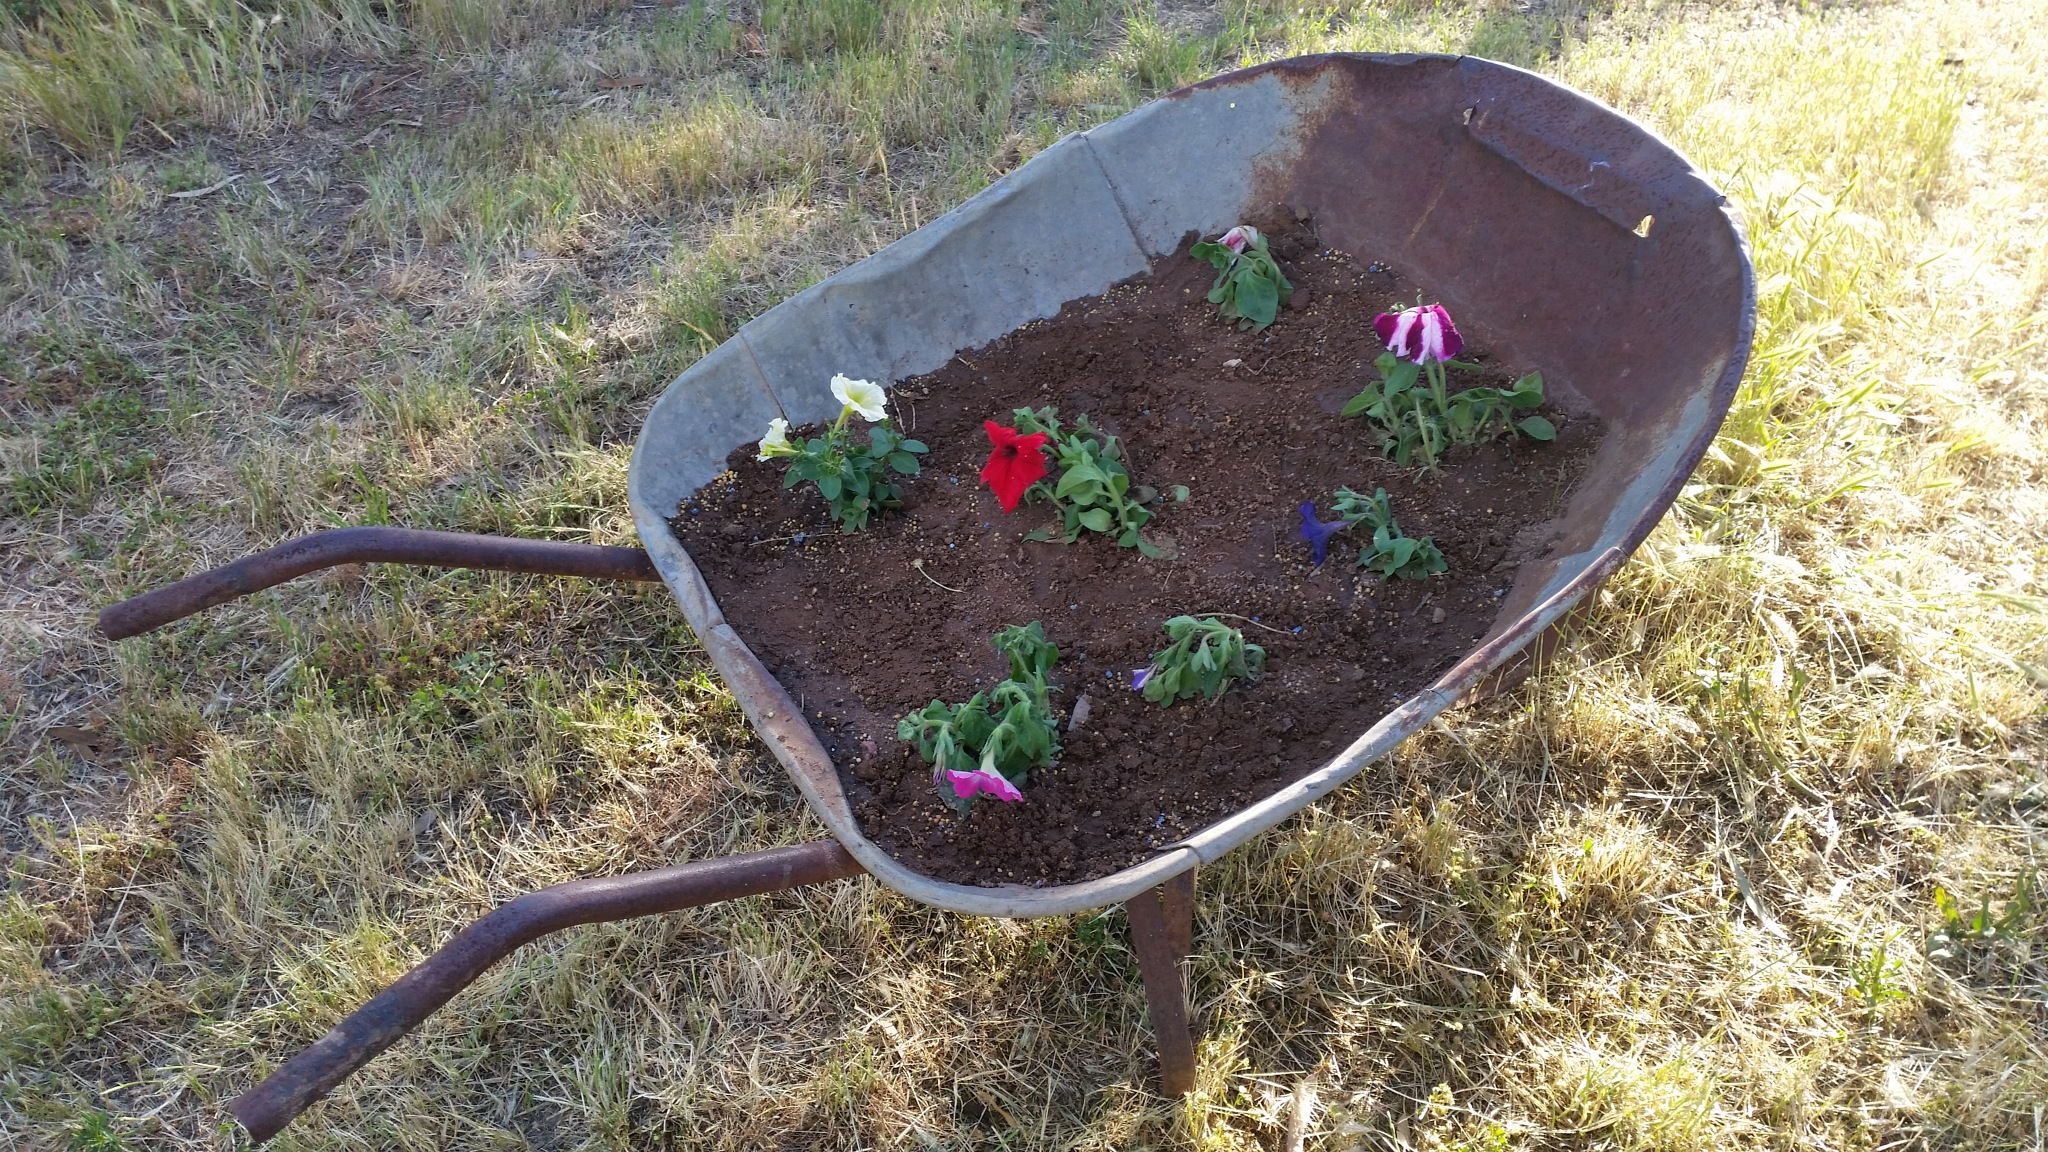 Preloved Wheel barrow with Perinals , Snap dragons, Sage and Chives. 2016 by Leica Ross